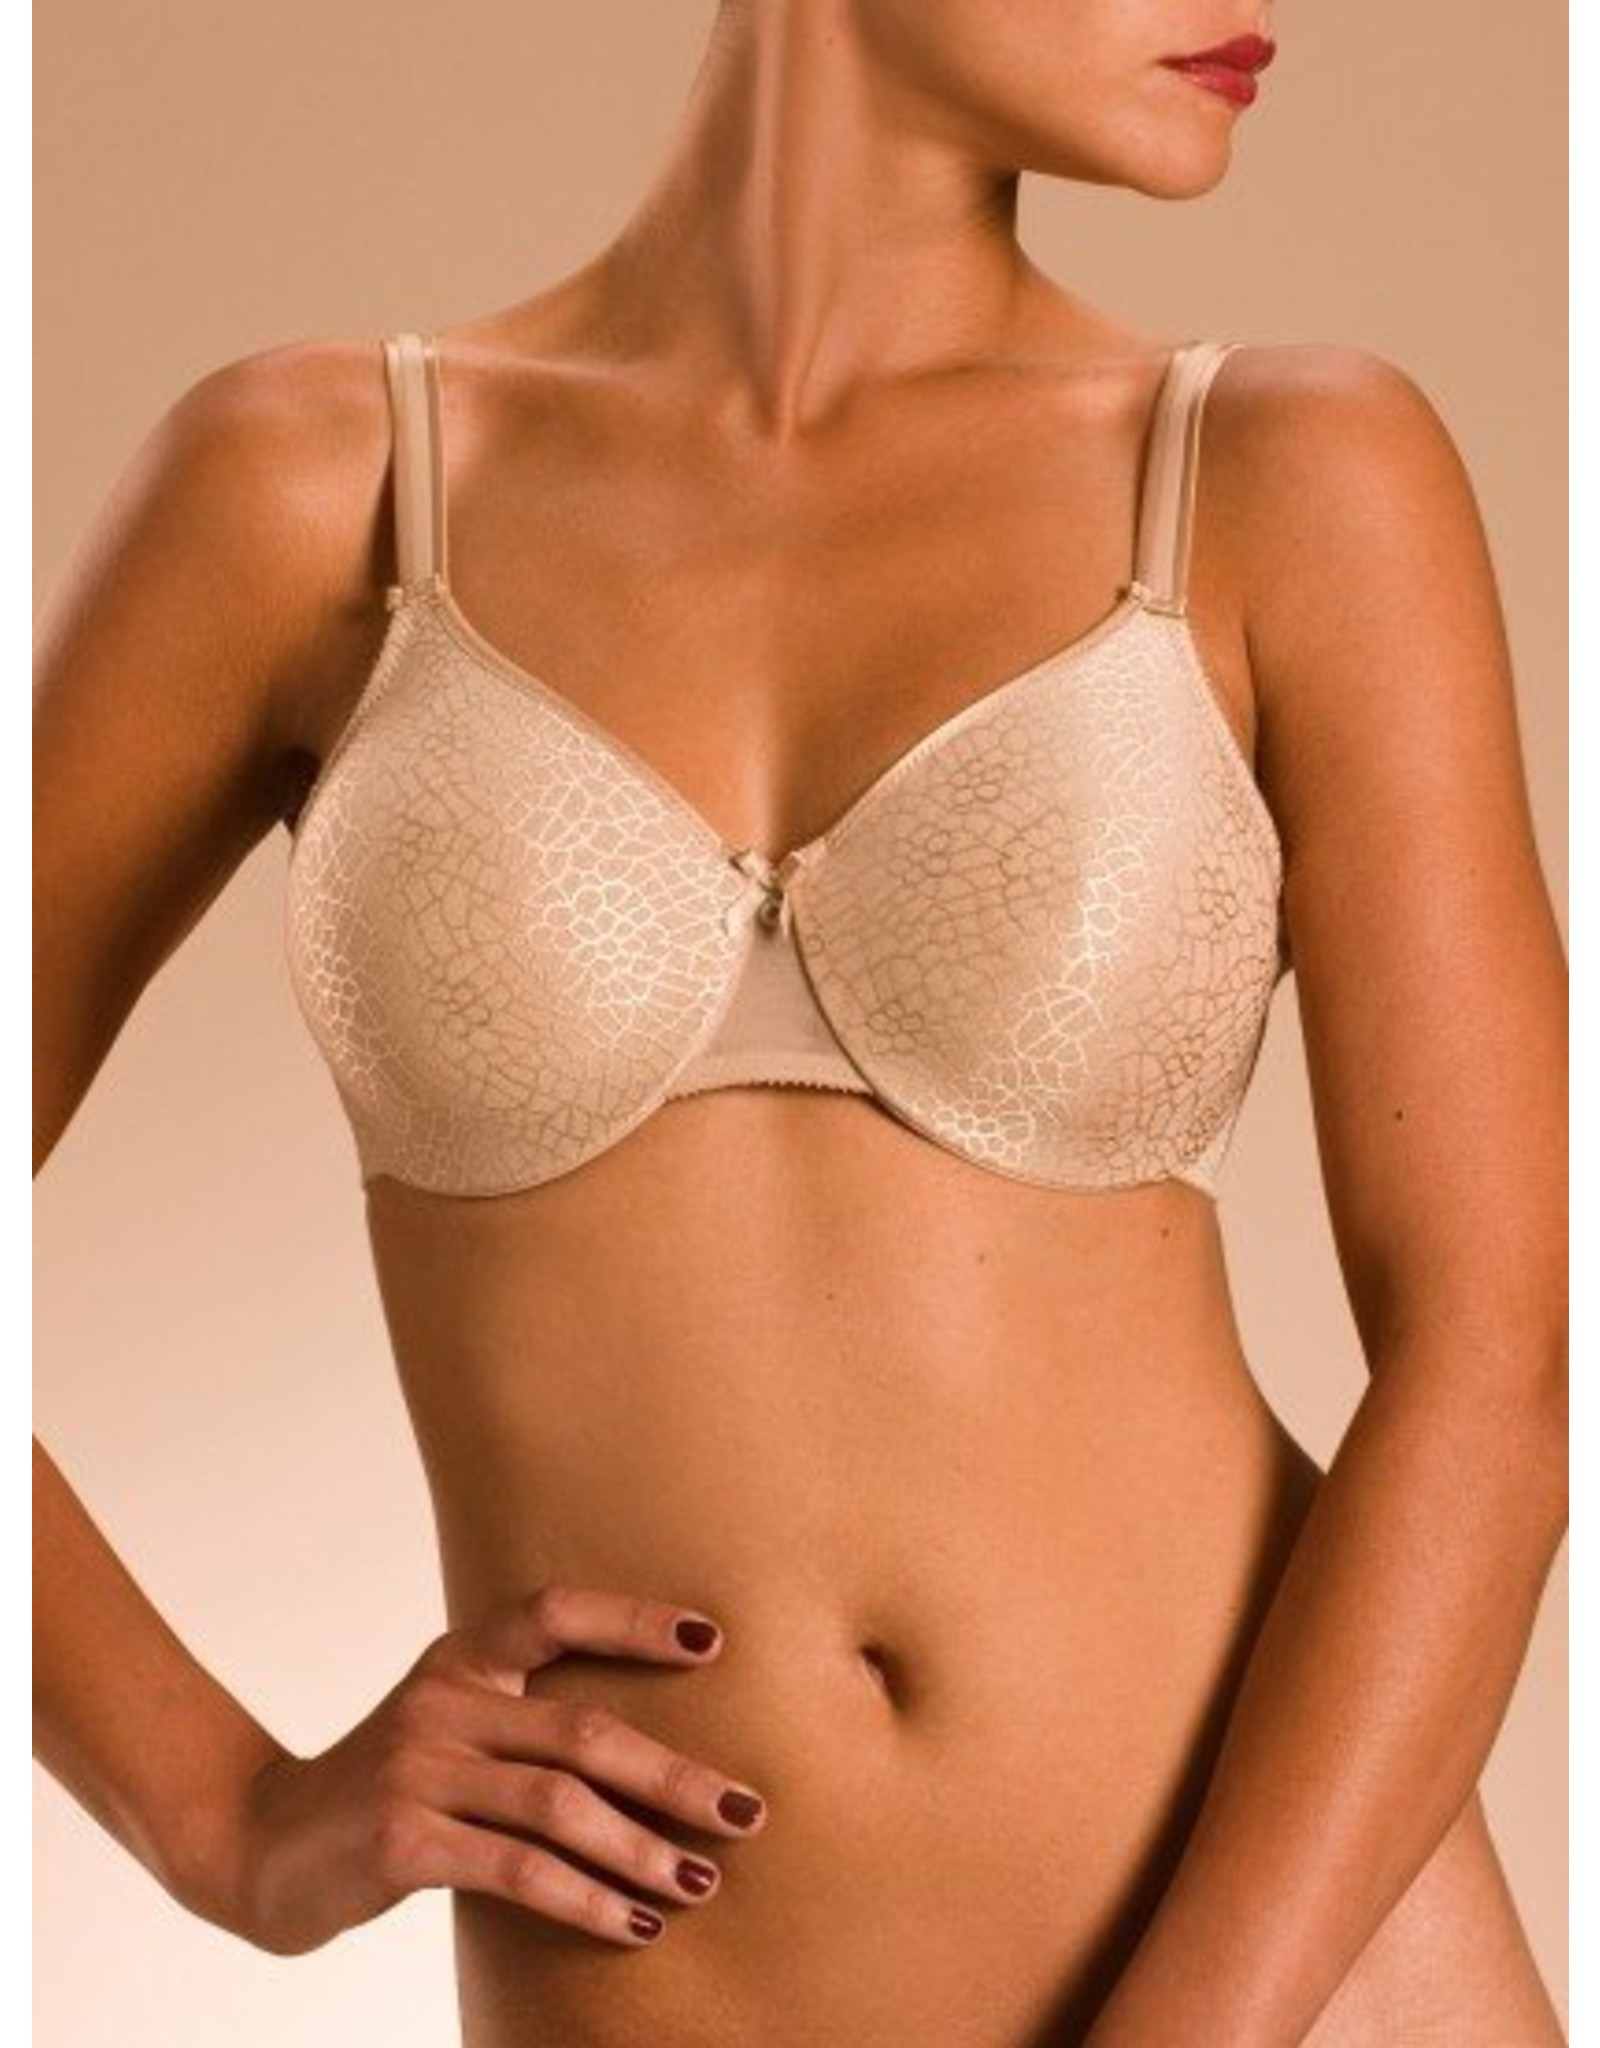 Chantelle Chantelle C Magnifique Moulded Minimizer Bra - Basics